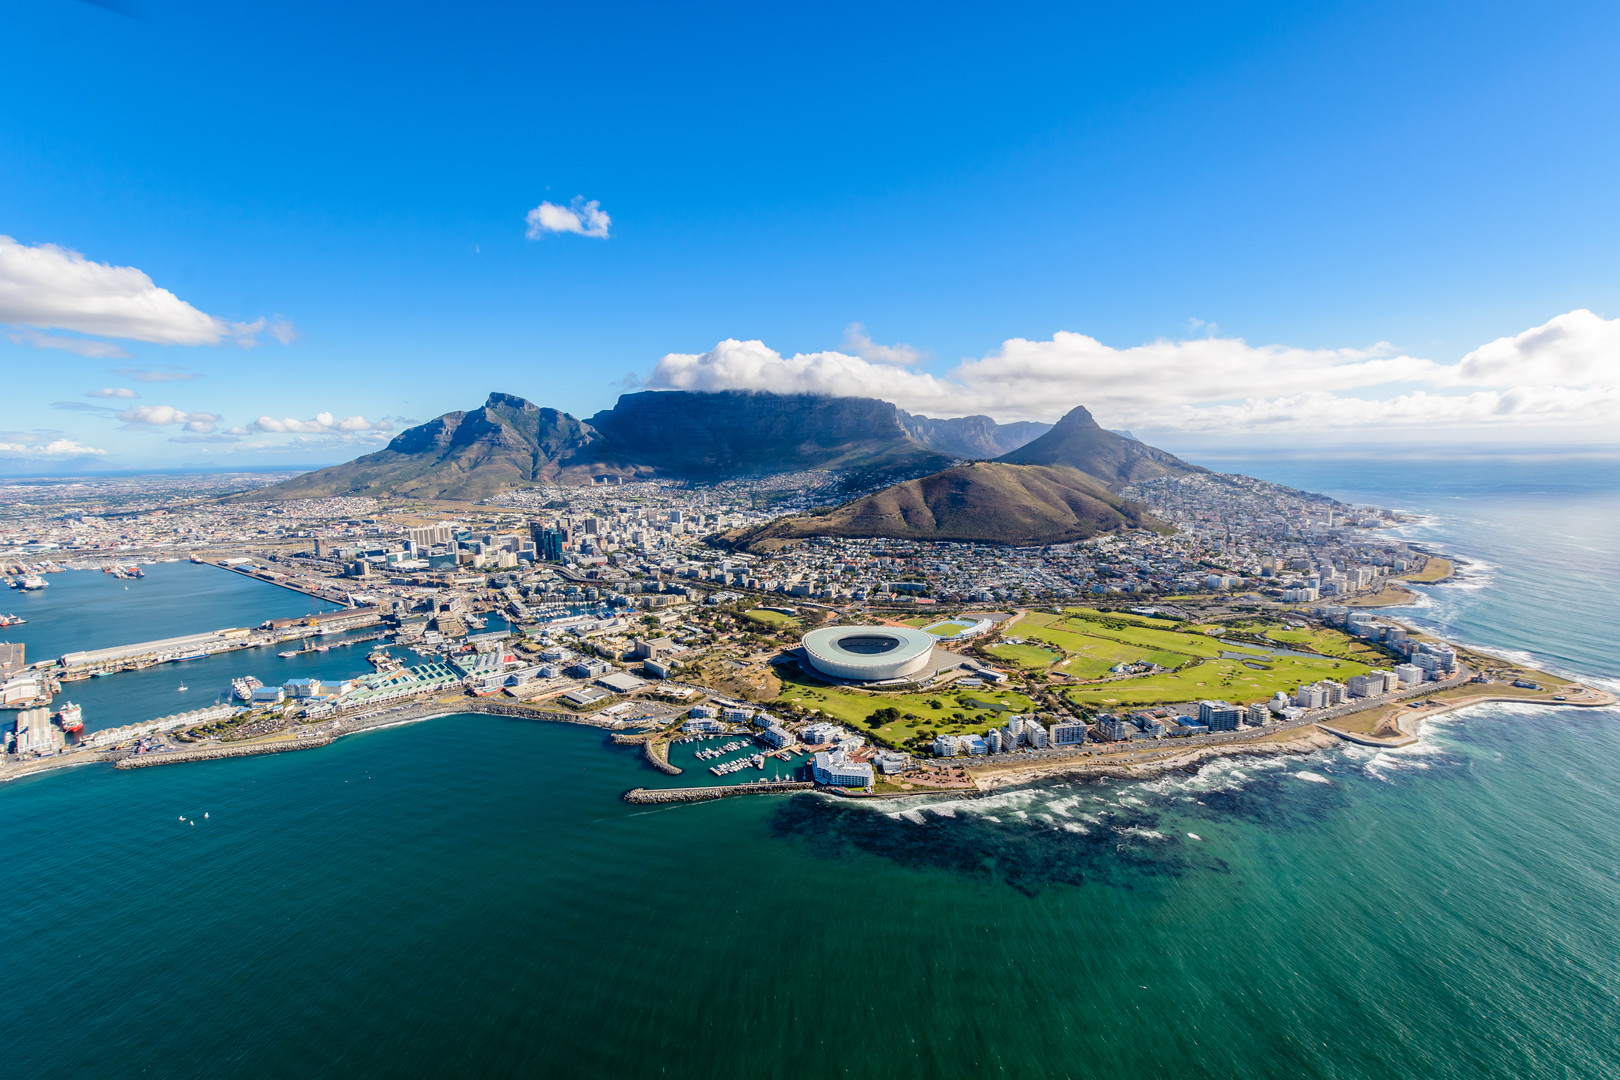 Ariel view of the City of Cape Town